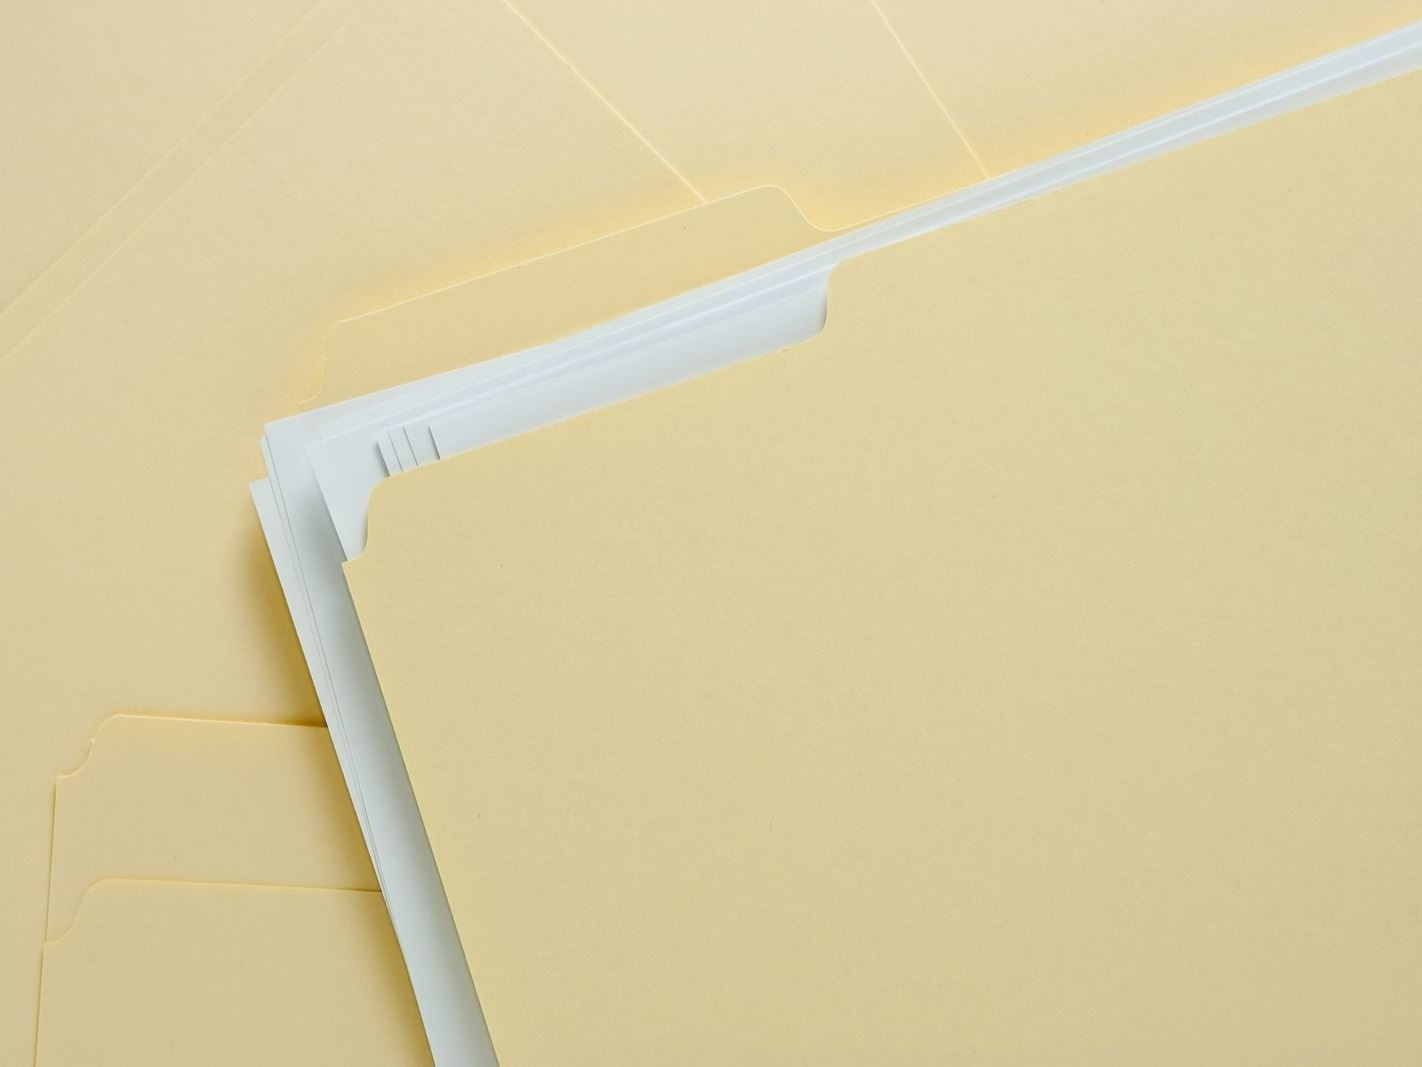 bigstock-File-Folder-With-Paper-On-Mess-6594336